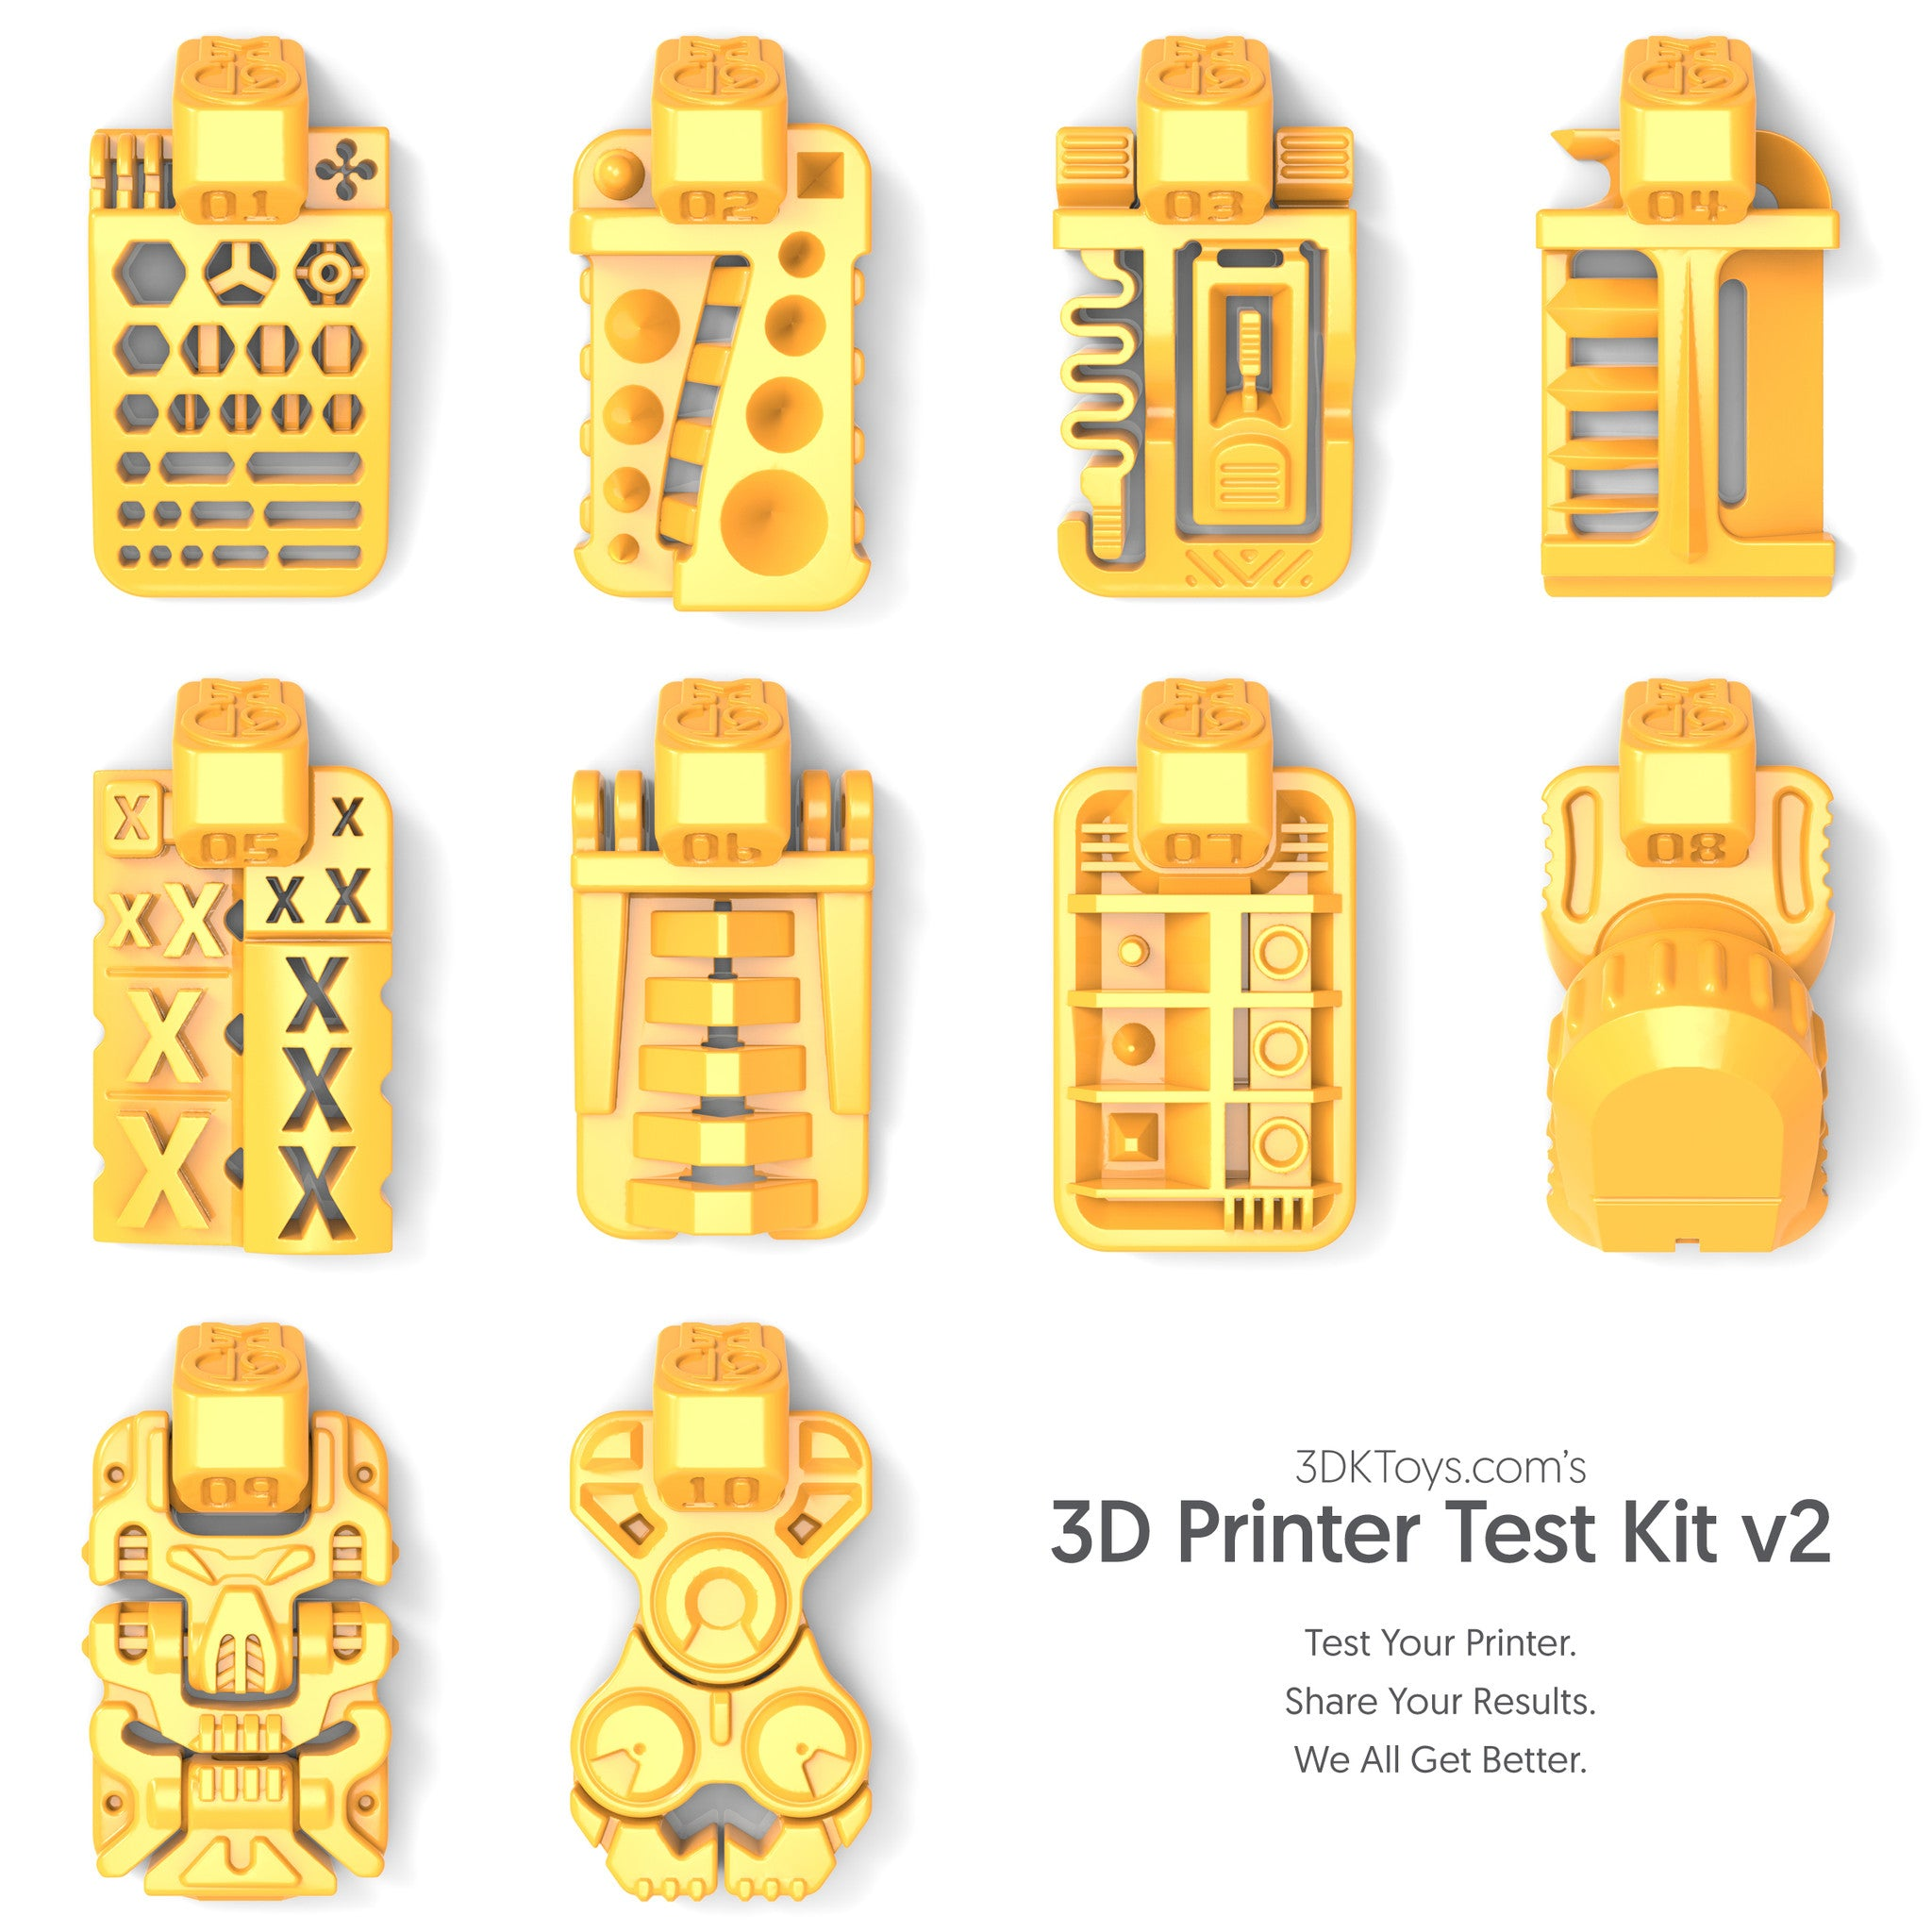 3D Printer Test Kit 2.0